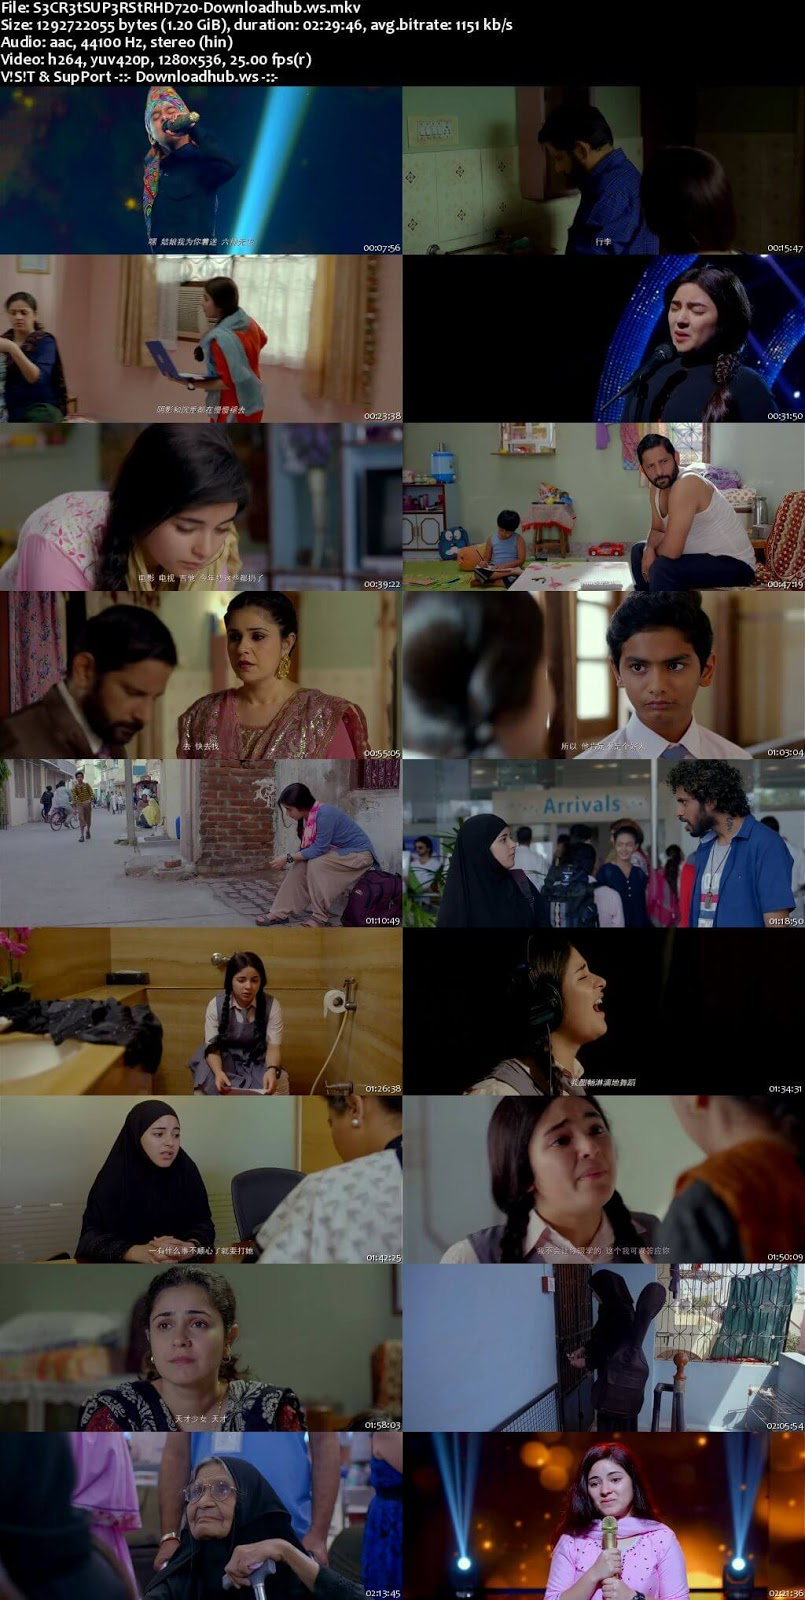 Secret Superstar 2017 Hindi 720p HDRip